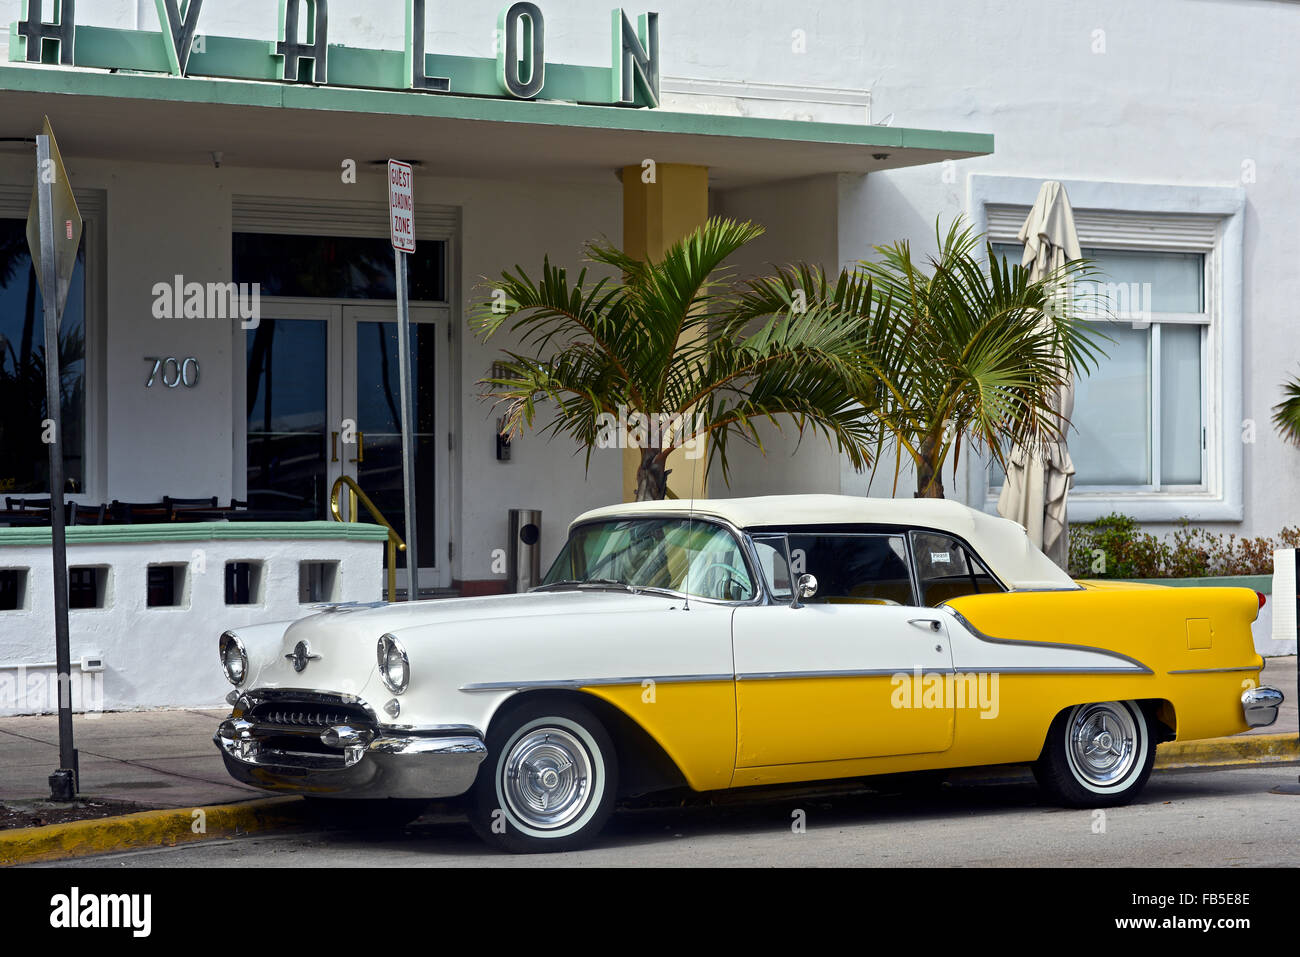 Classic American Vintage Cars Ocean Drive Miami Beach Stock